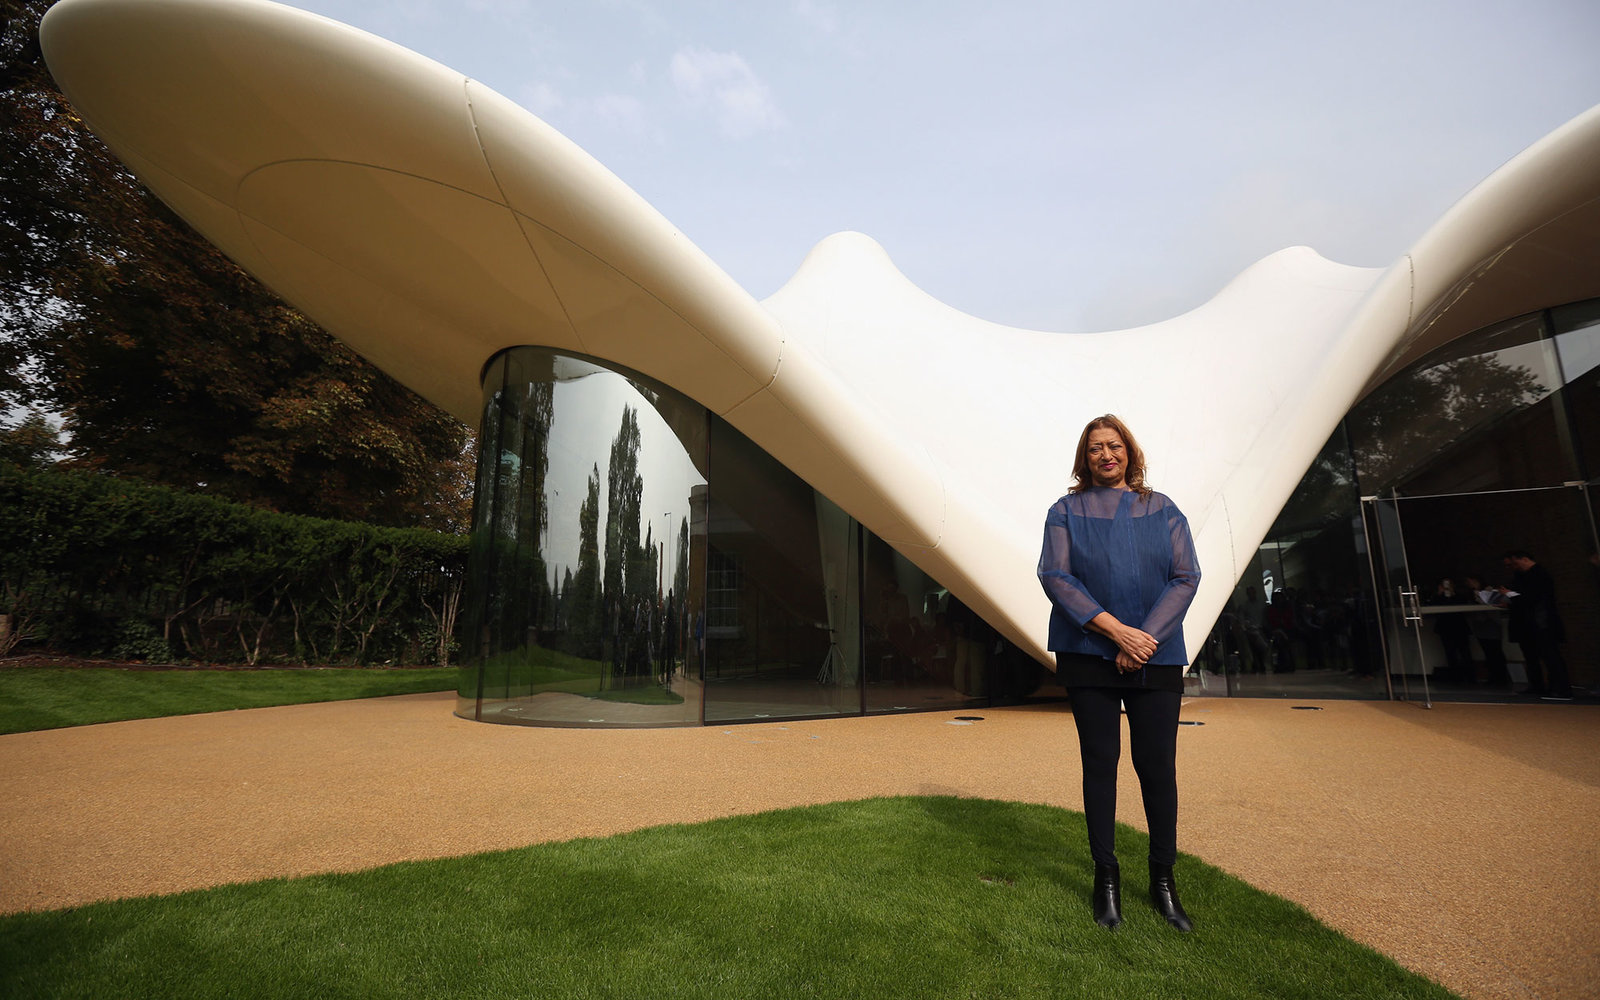 LONDON, ENGLAND - SEPTEMBER 25:  Architect Zaha Hadid poses for a photograph in front of the redeveloped Serpentine Sackler Gallery in Hyde Park on September 25 2013 in London, England. The renovation of the 1805 gunpowder store, located on the north side